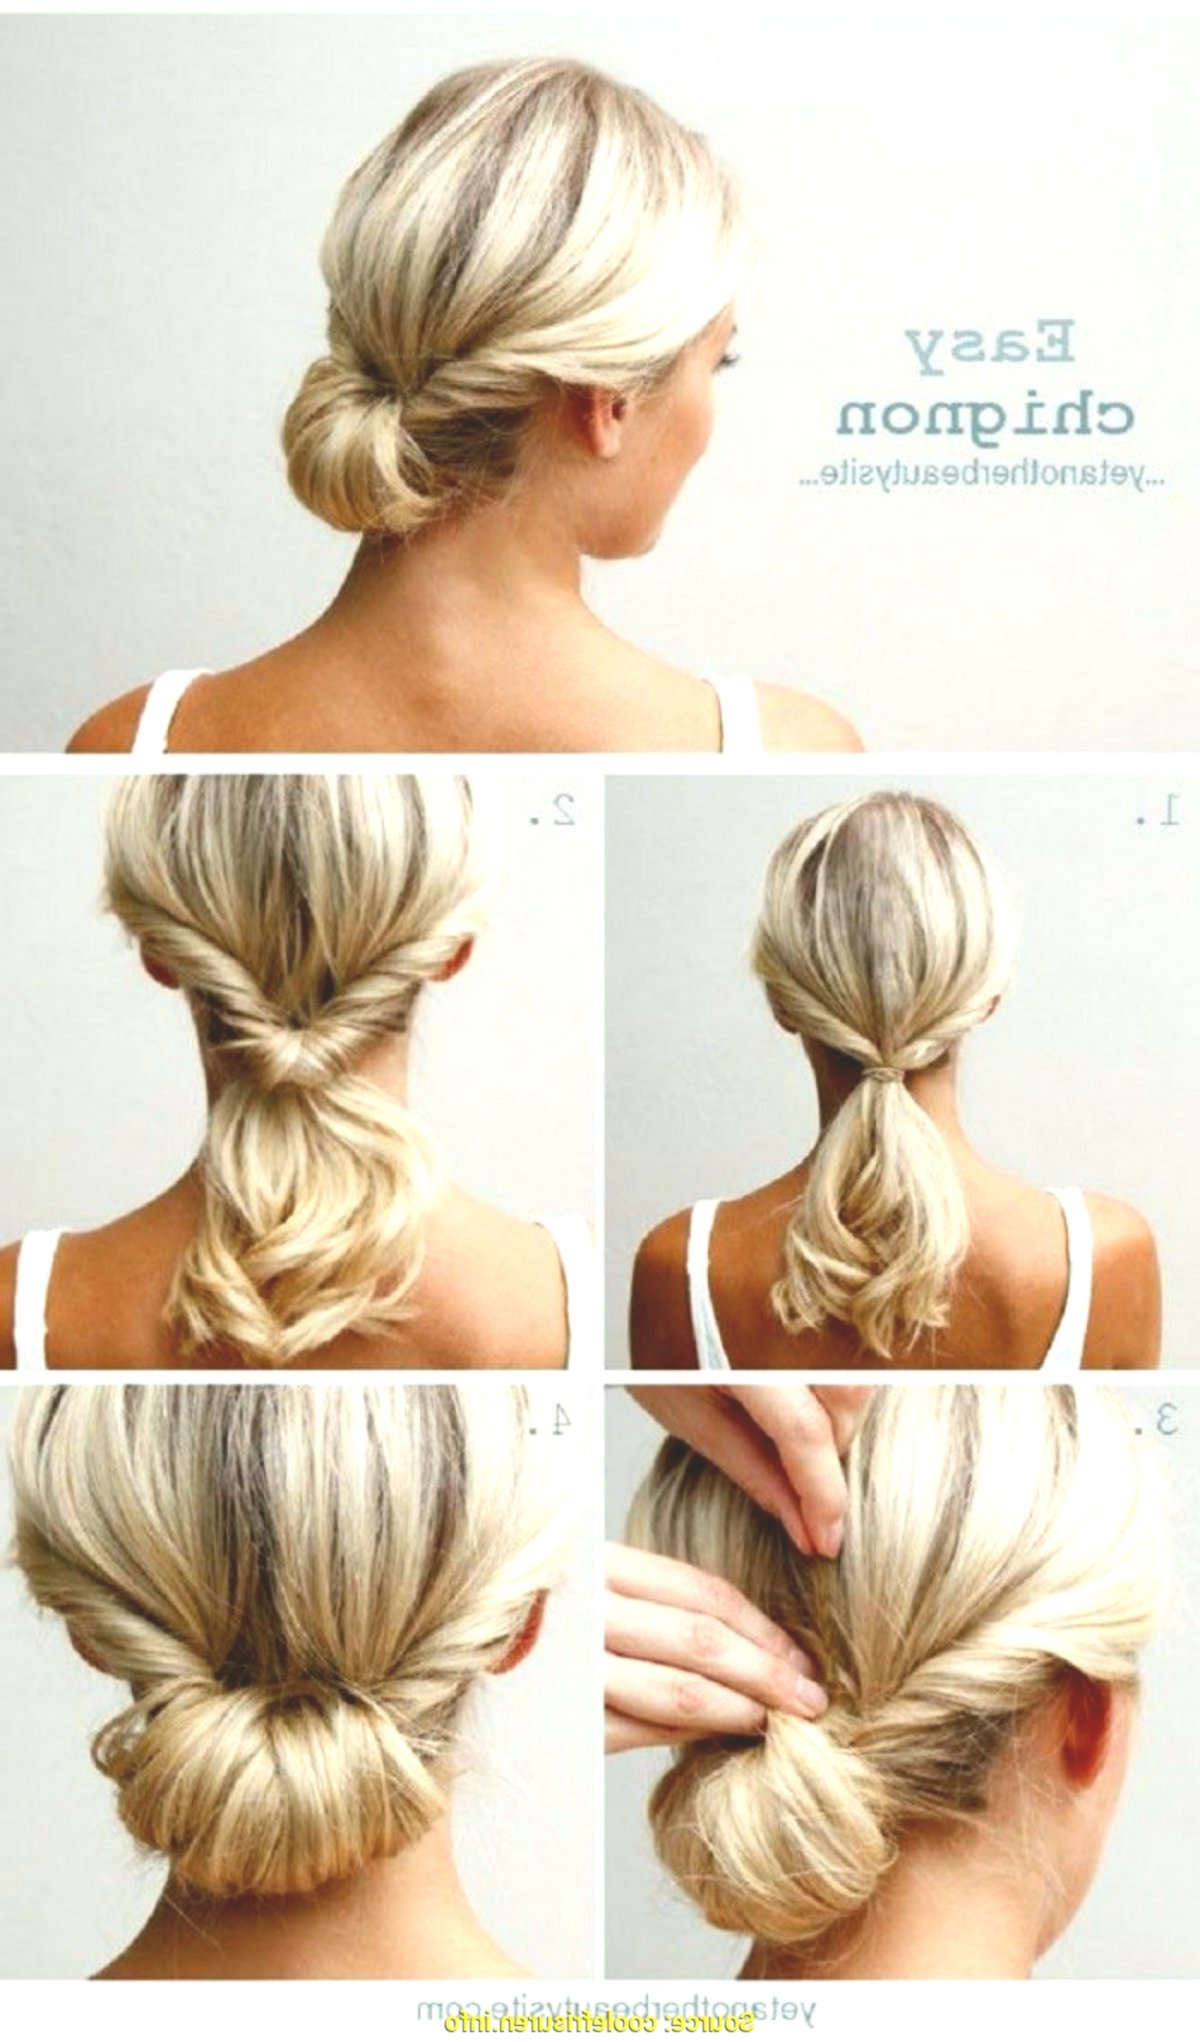 lovely hairstyles for slim faces photo picture - Wonderful Hairstyles For Narrow Faces Decoration